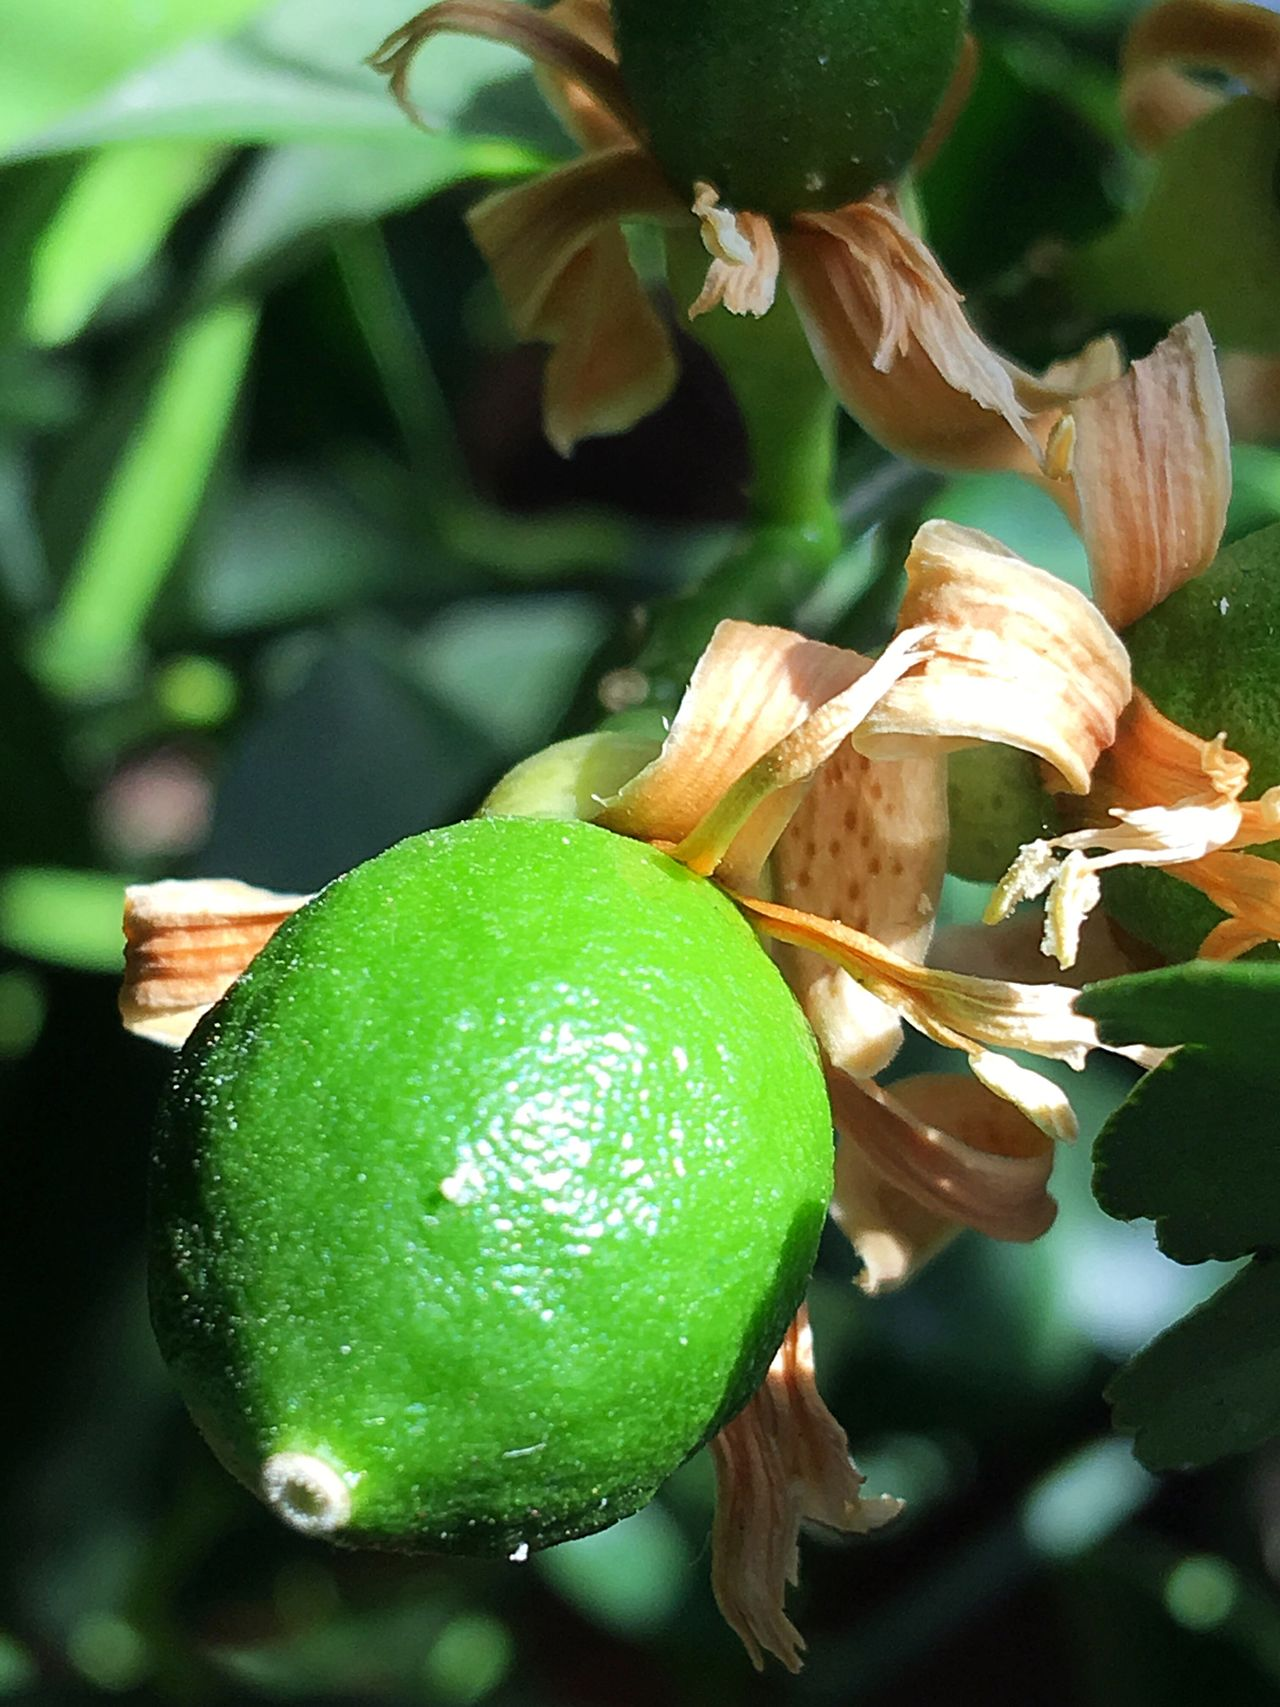 Fruit Baby Meyer Lemons Meyer Lemon Tree Meyer Lemon Blossom Meyer Lemon Meyer Lemons Lemon Tree Lemons Baby Lemons Fruit Blossom Blossom Blooming Tree Container Gardening Organic Food Gardening Citrus Tree Citrus  Fruit Tree Tree Fragrance Food Blooming Green IPhone Green Color Growth Lemon Focus On Foreground Close-up Freshness Citrus Fruit Food And Drink Nature Tree Leaf Beauty In Nature Outdoors No People Healthy Eating Day